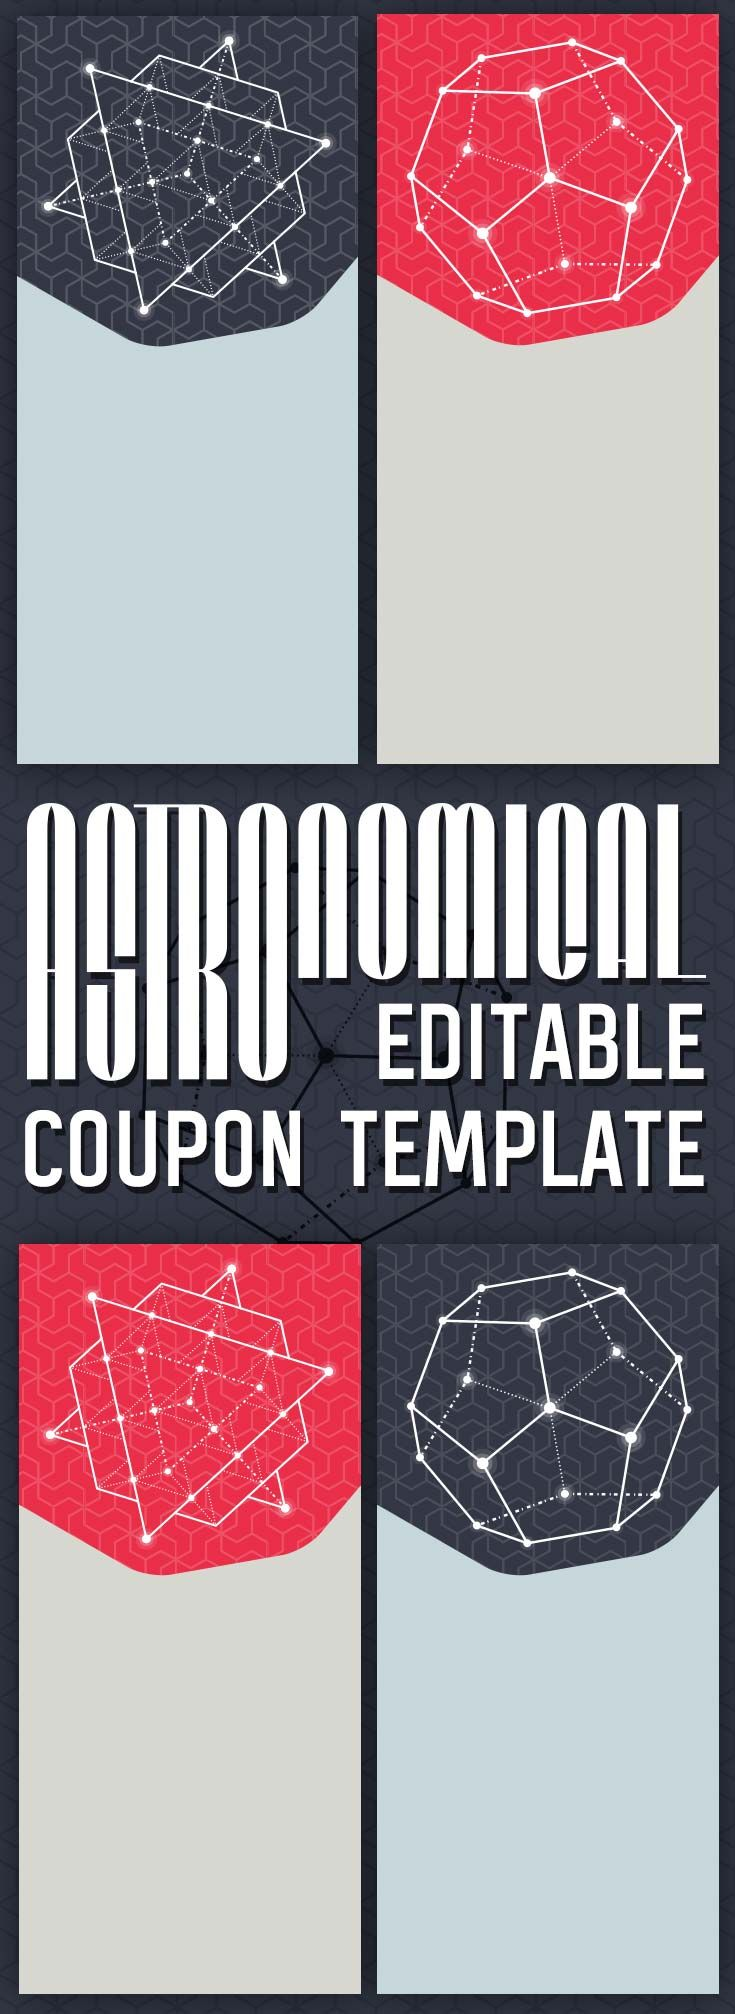 Space Themed Free Printable Astronomical Editable Coupon Template